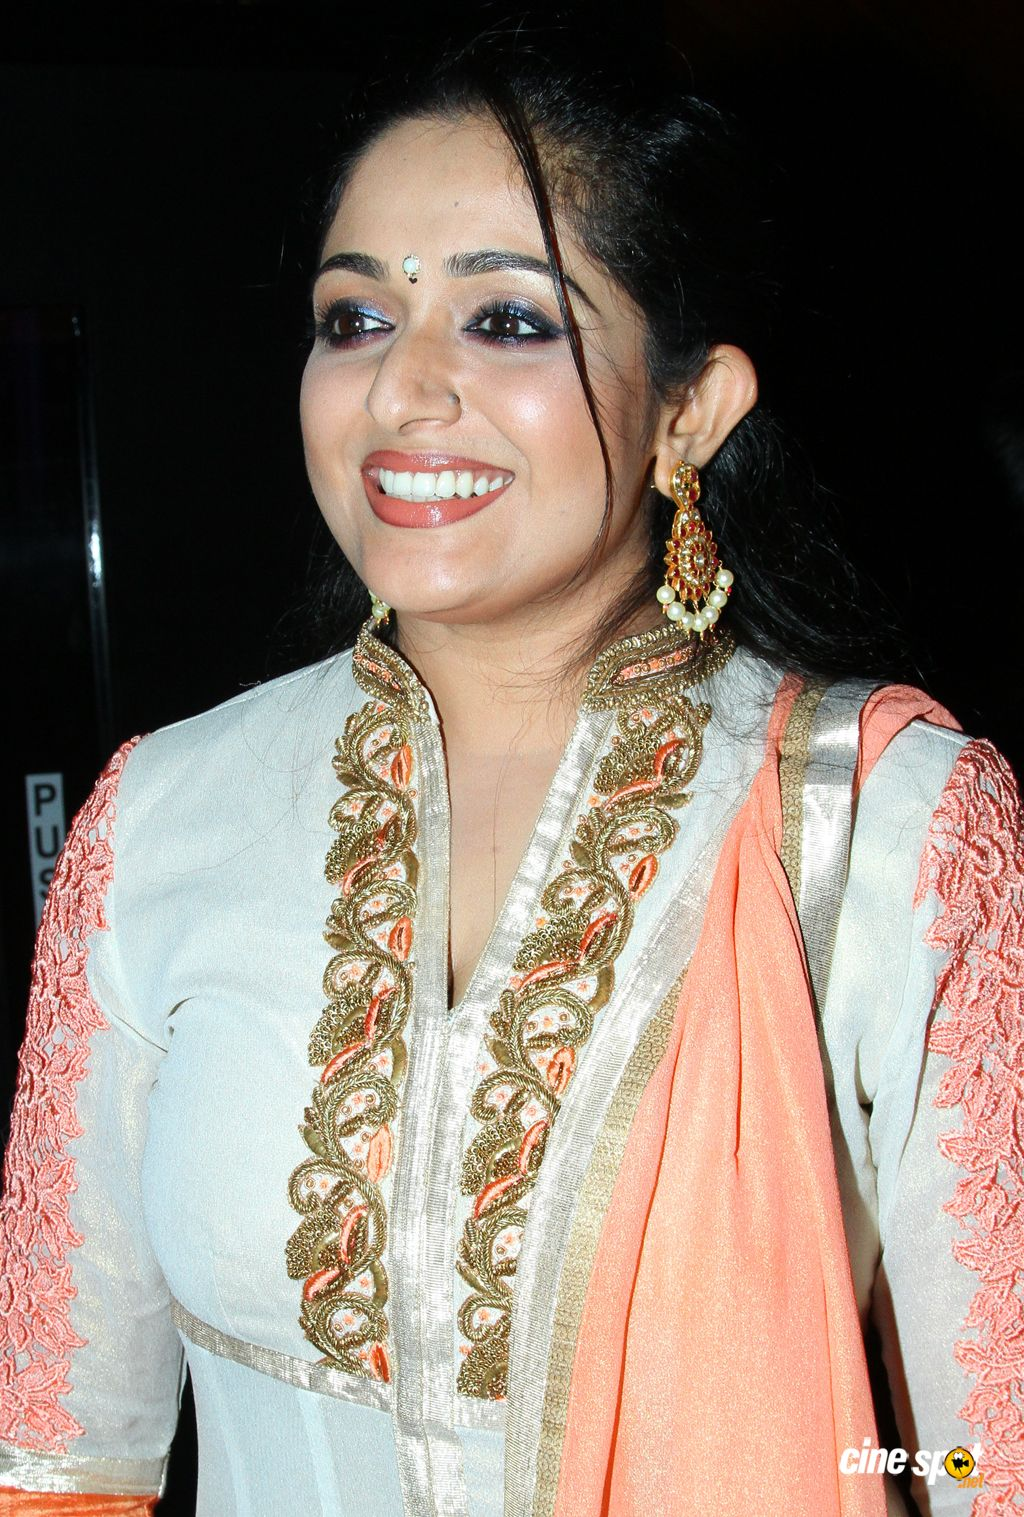 Kavya Madhavan Recent Photos http://webupdatestoday.com/celebrity-photos/kavya-madhavan-latest-photos-beautiful-malayalam-film-celebrity-kavya-madhavan-acting-performance-photos/